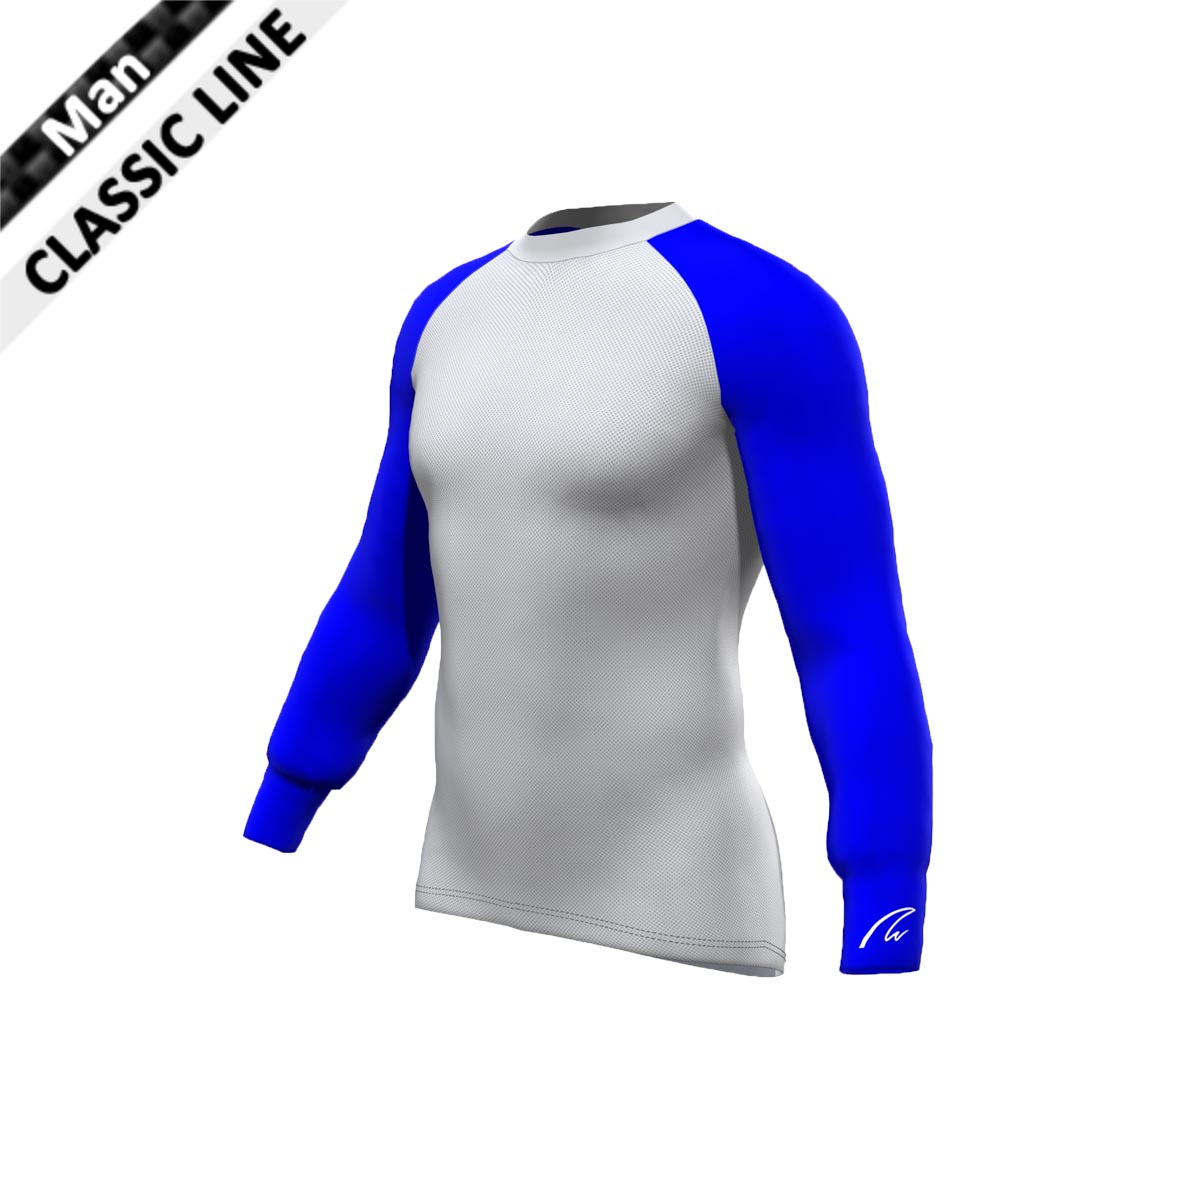 Mesh Gamex - Man Longsleeve royal blau